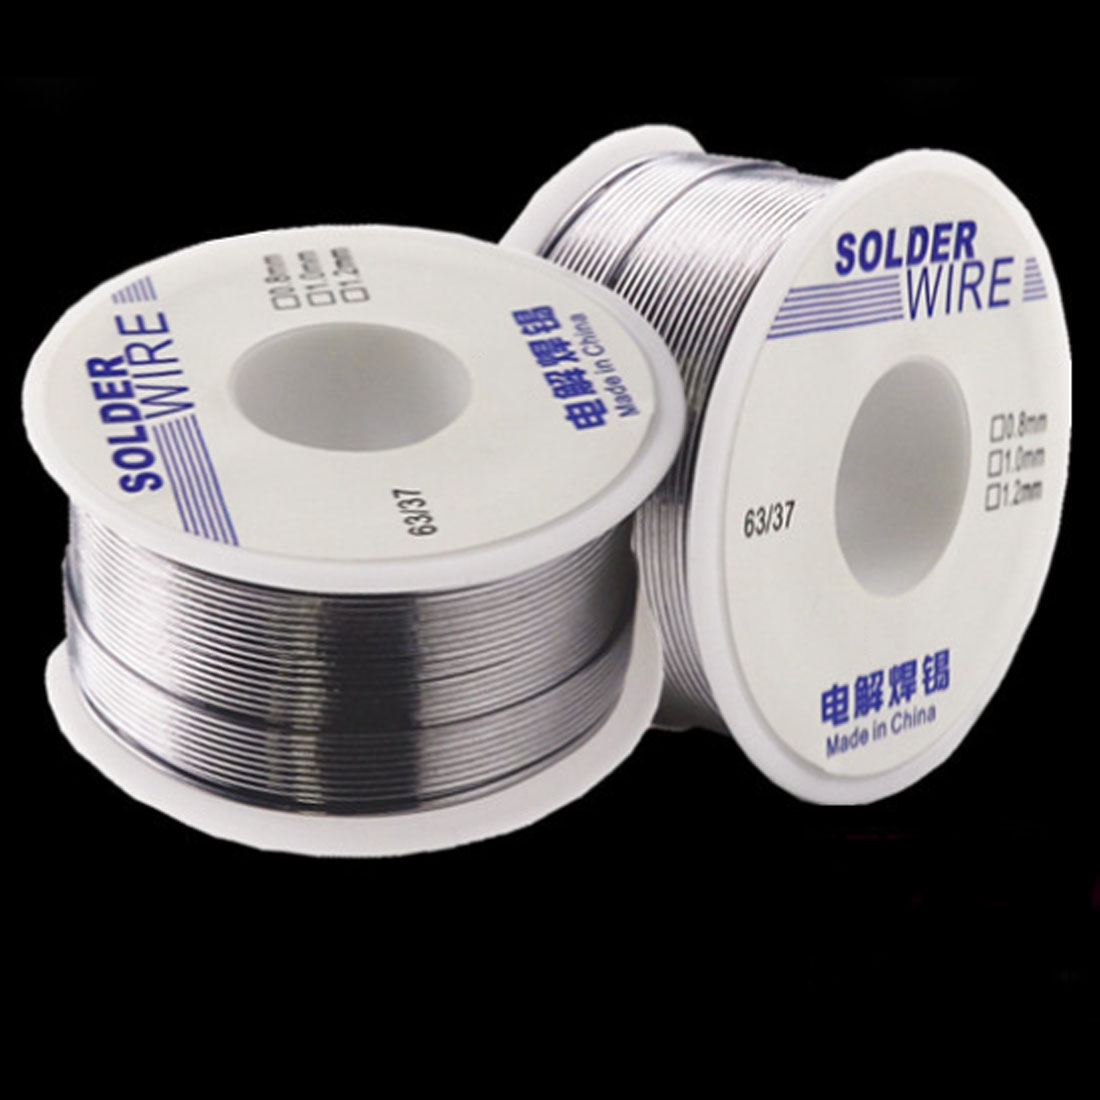 1Pc Industrial Solder Wire 63/37 50g 1.0mm/0.8mm 2.0-2.3 % Flux Melt Rosin Core Welding Tin Lead Tin Wire Roll